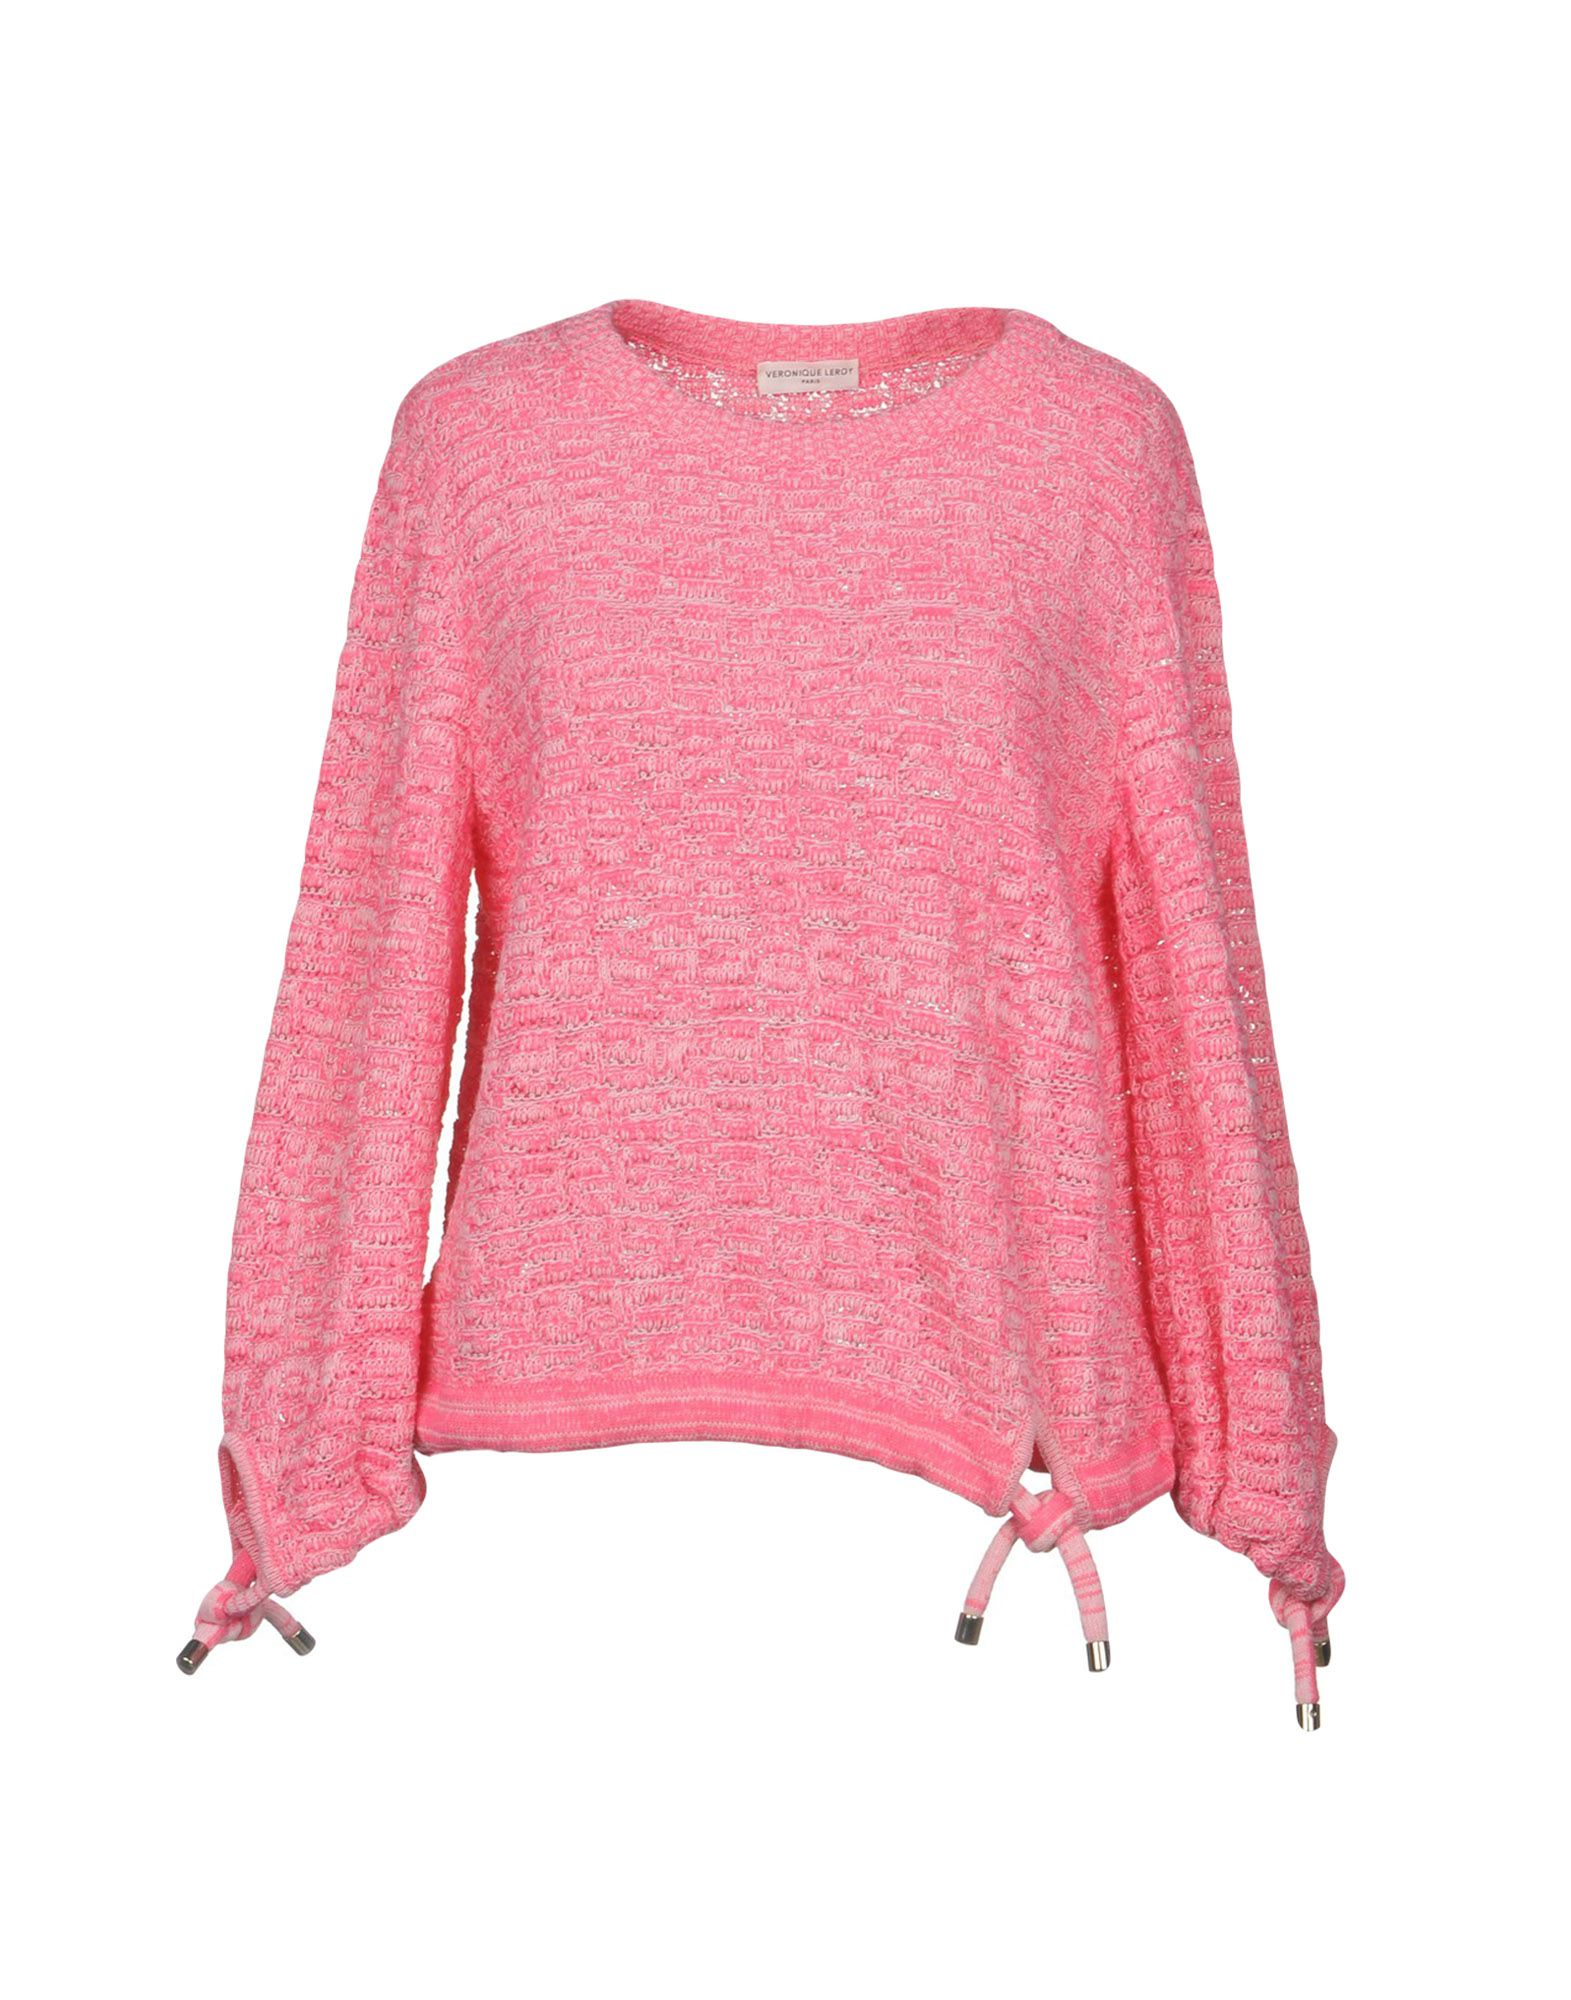 VERONIQUE LEROY Sweaters in Pink